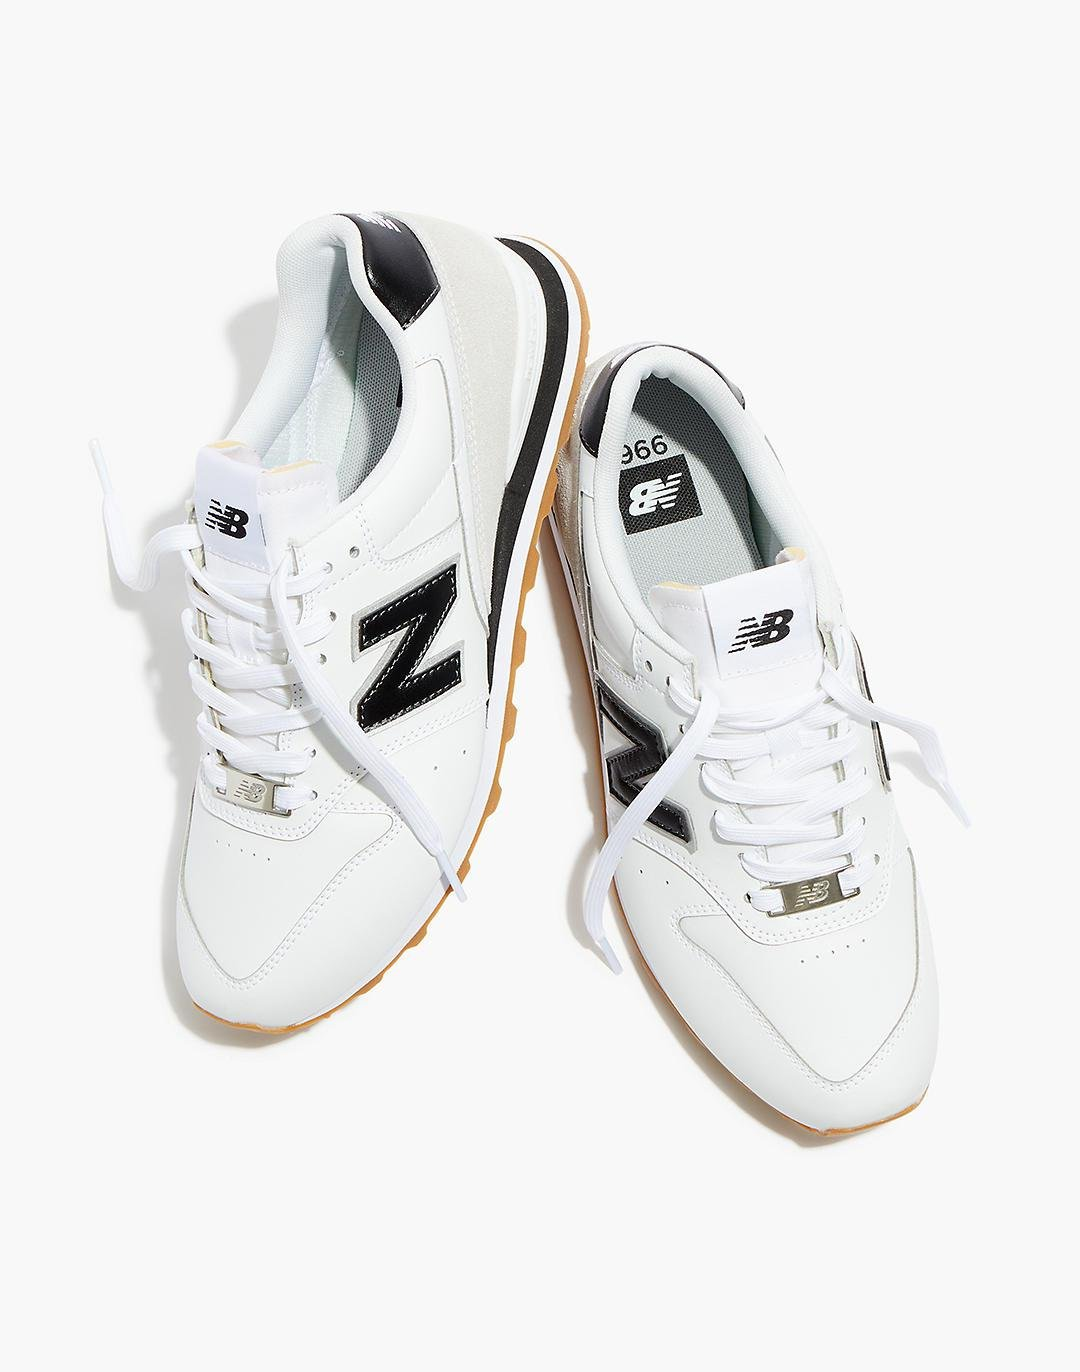 New Balance® 996 Sneakers in White and Black 0